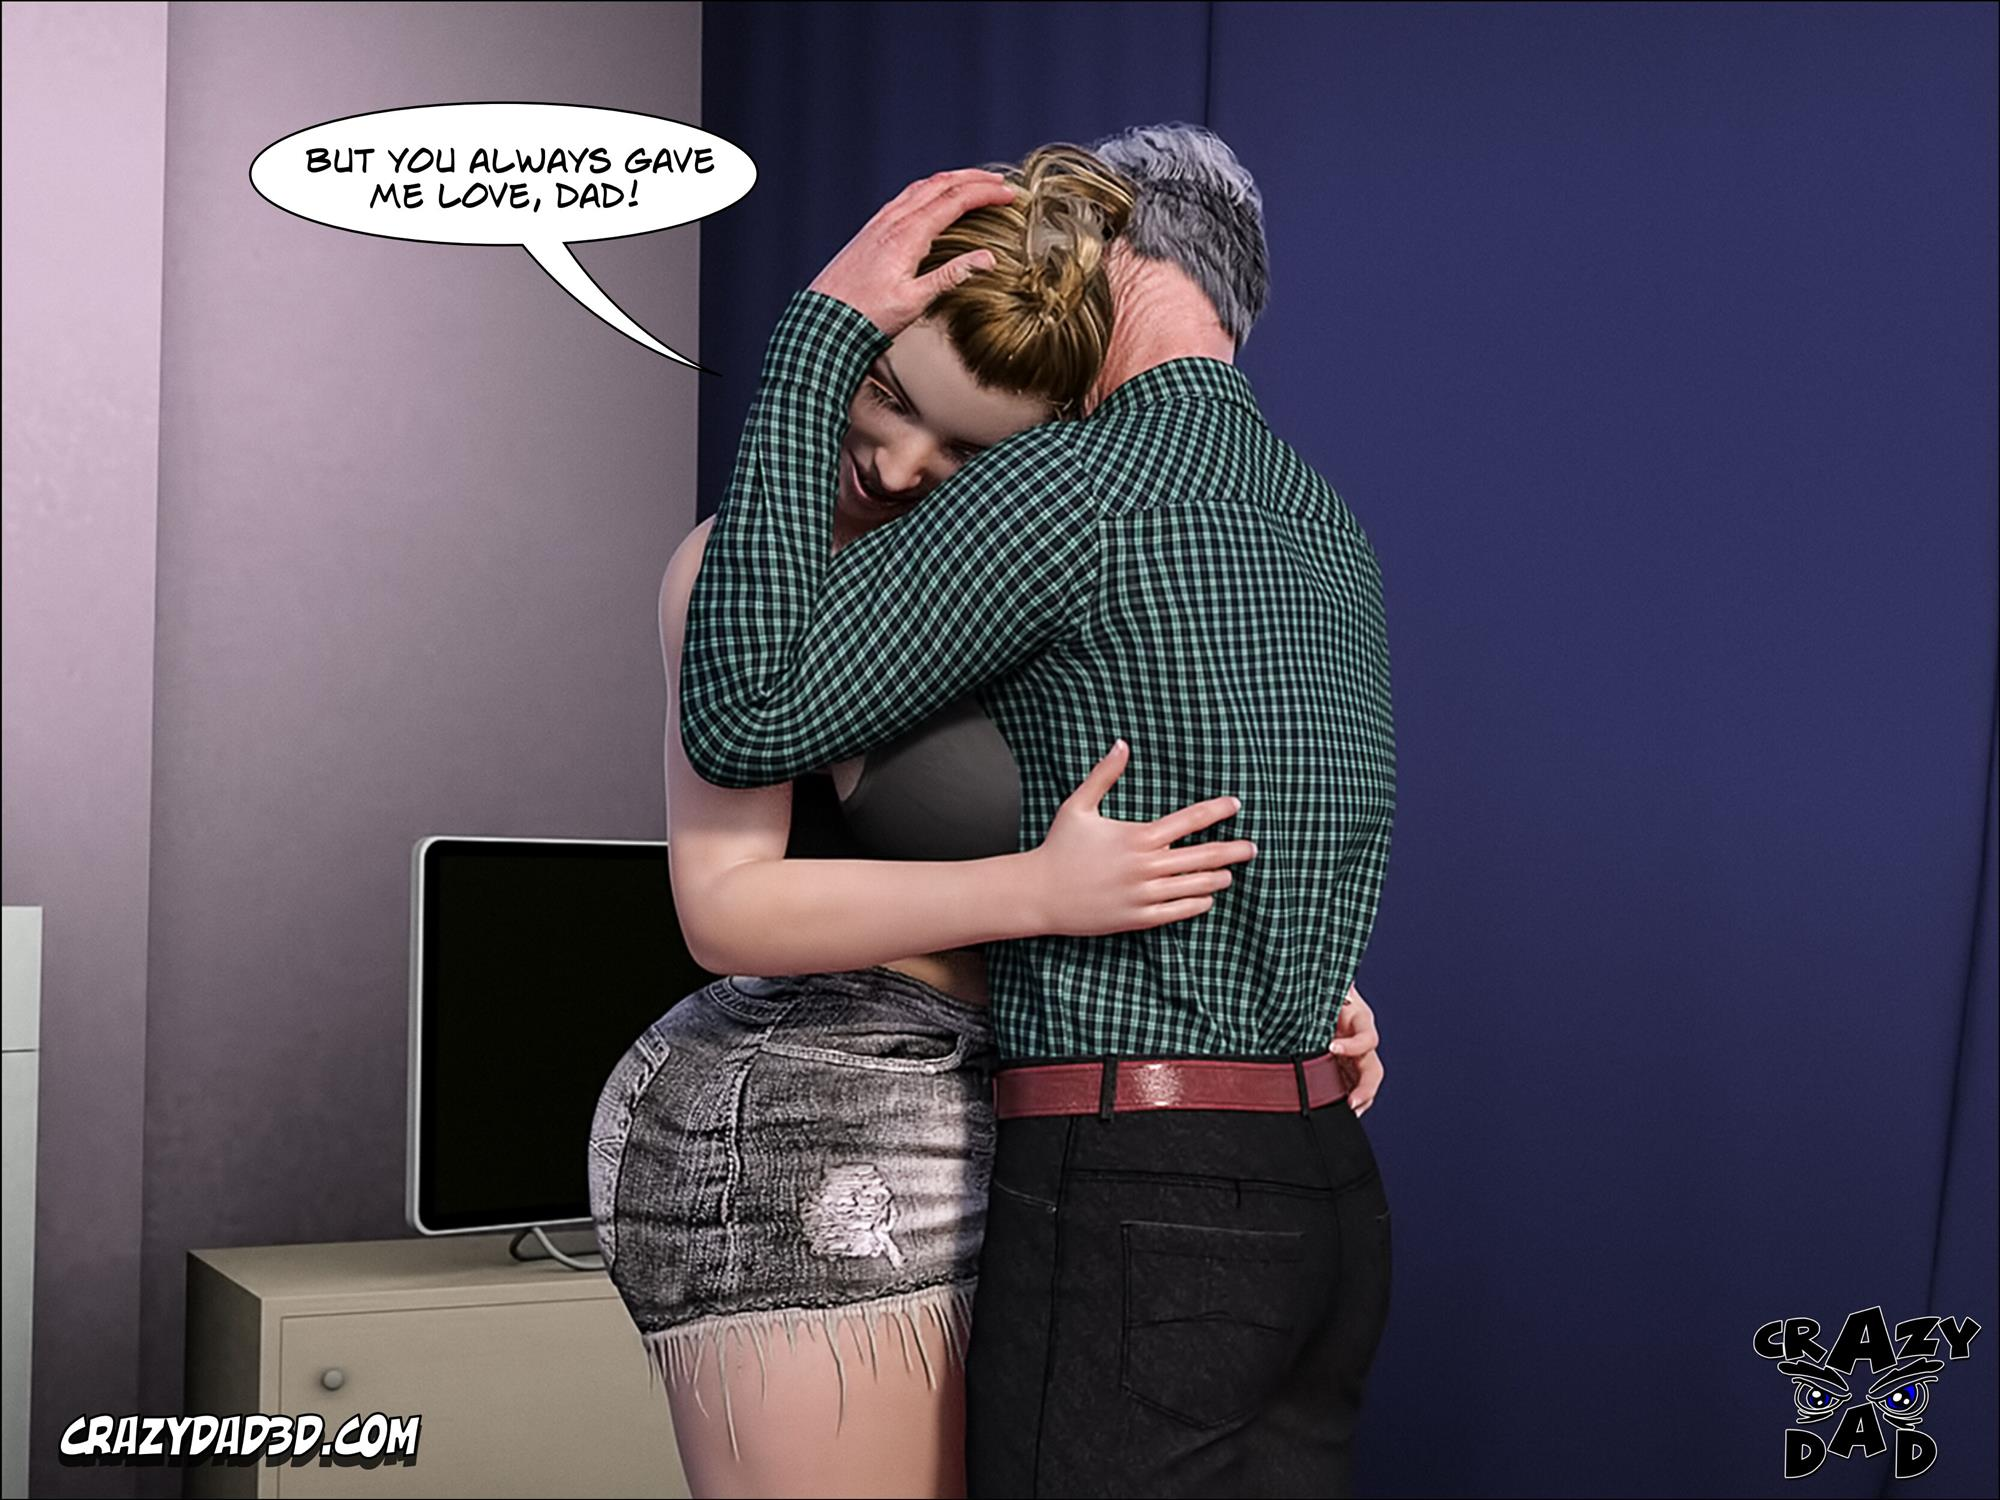 Father-in-Law at Home 10 [Crazy Dad 3D] - Foto 61